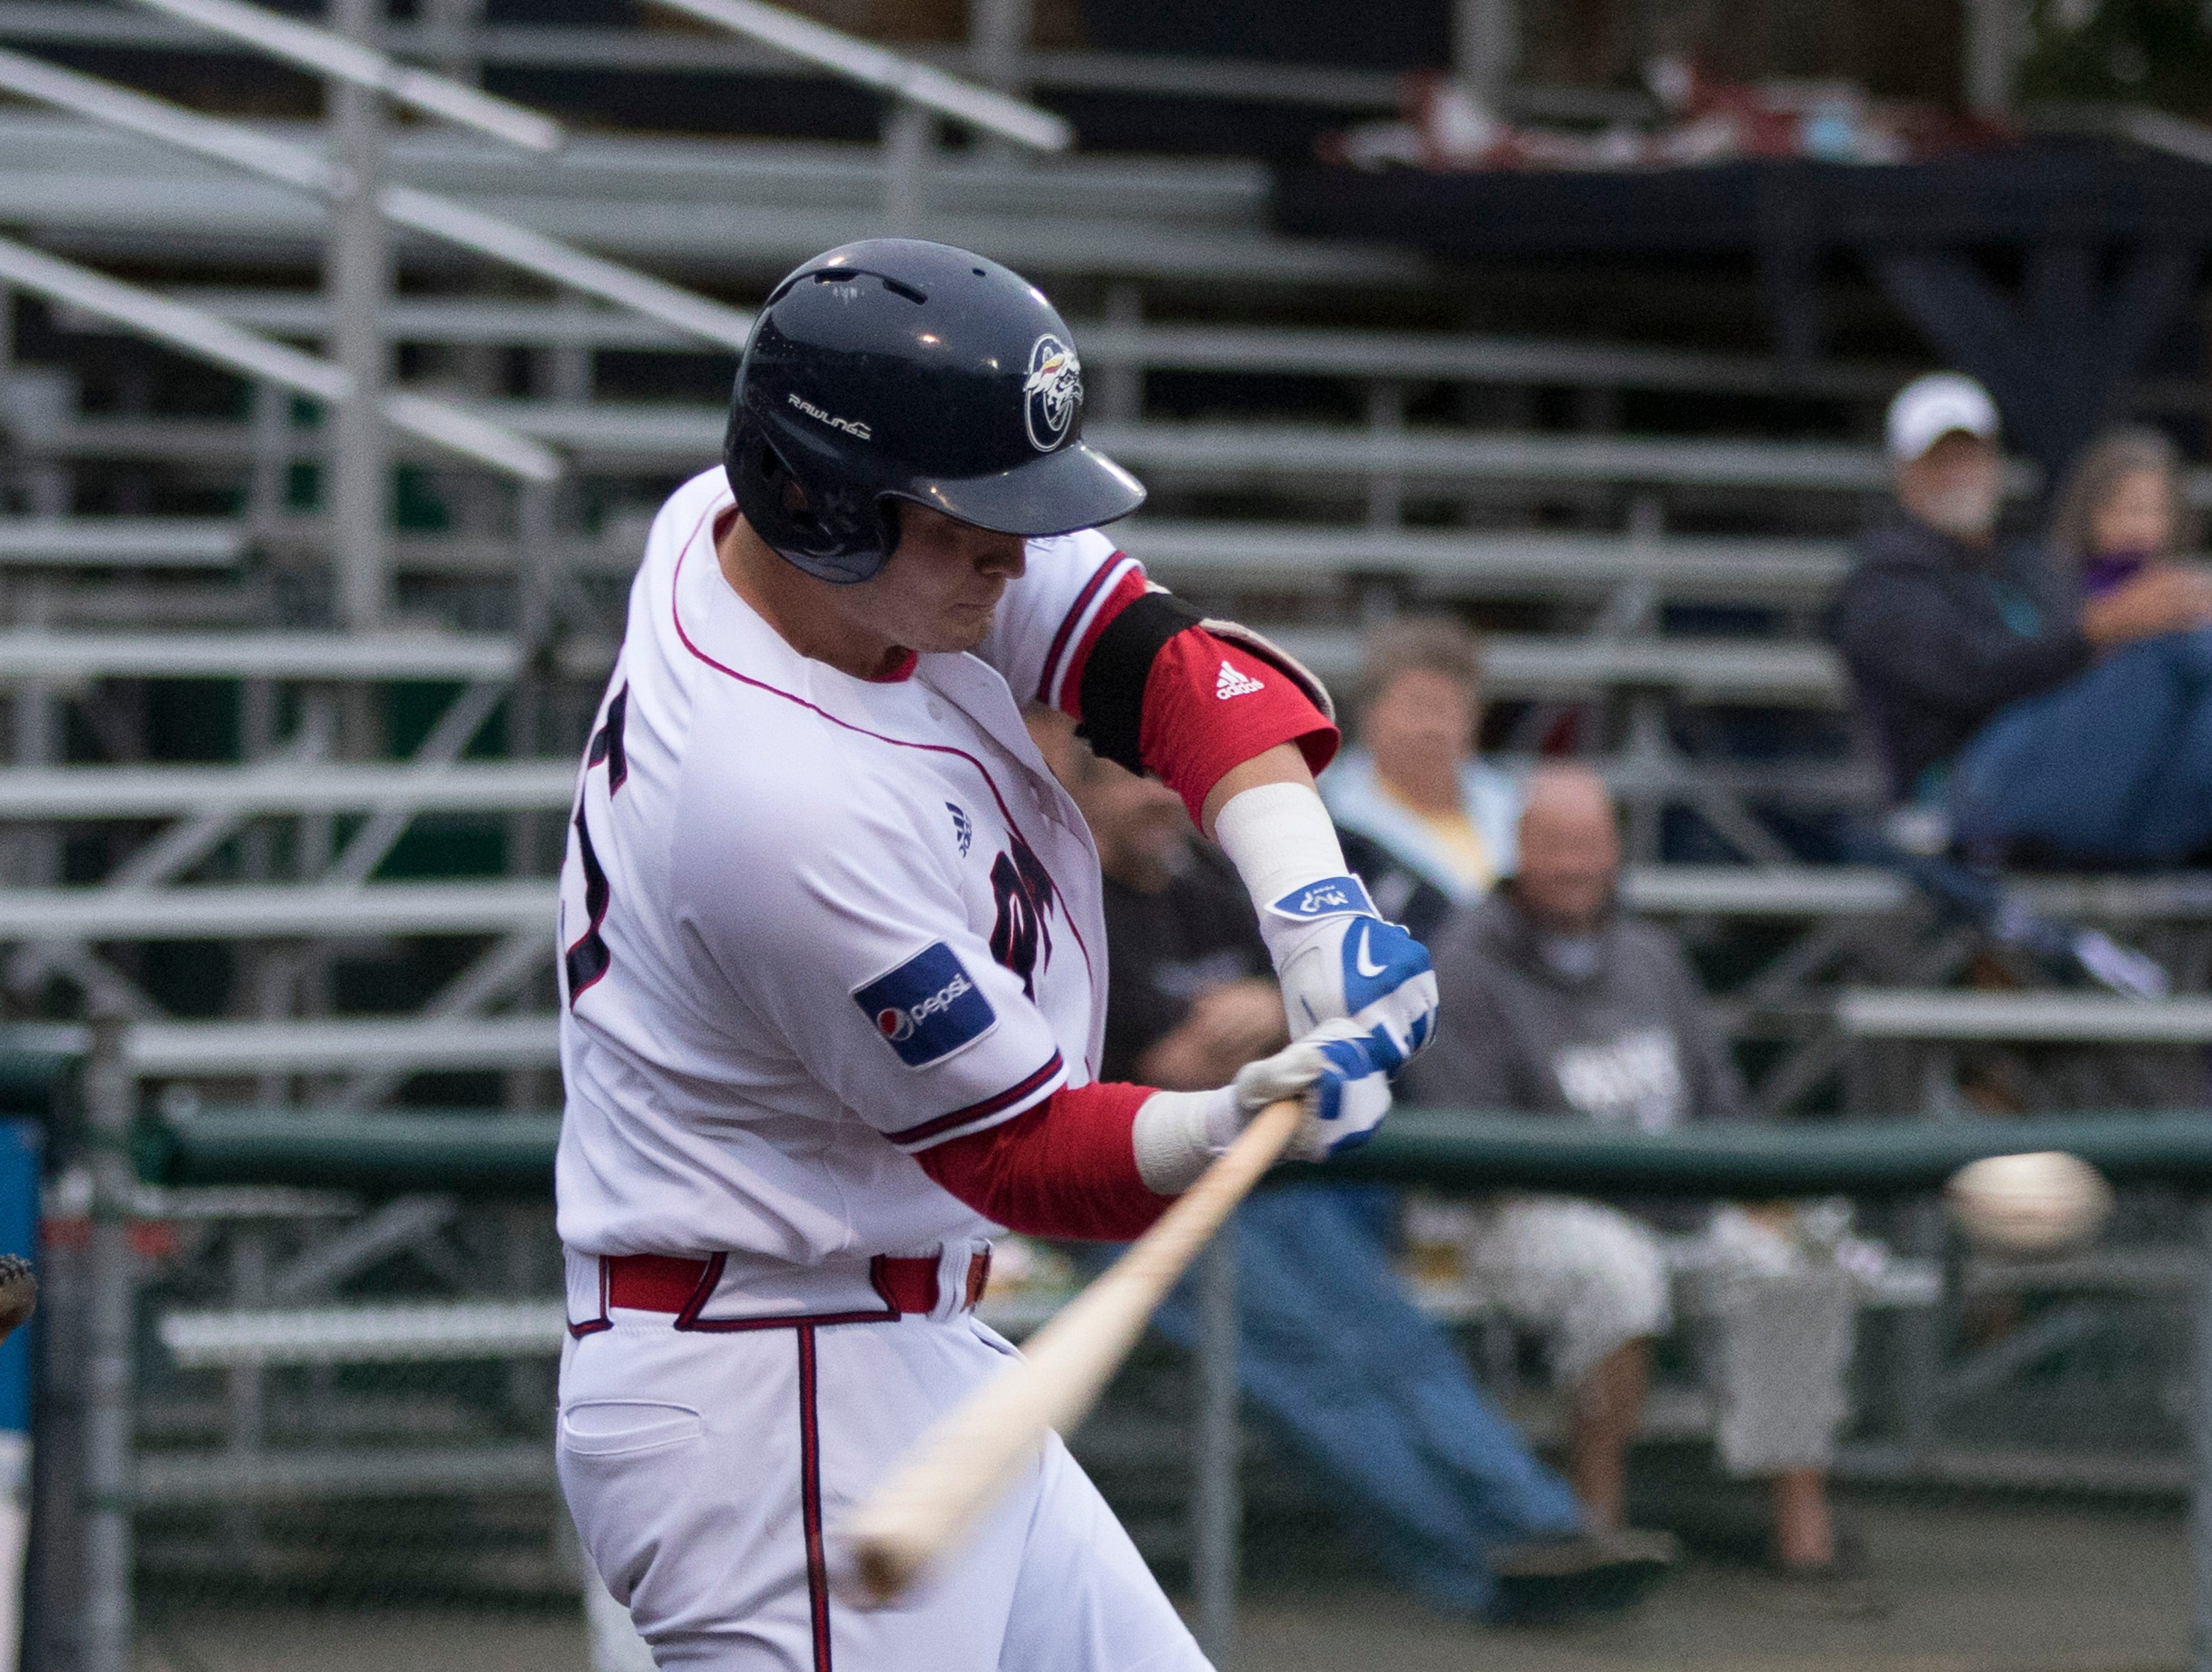 The Chillicothe Paints defeated Butler BlueSox 2-1 after the fifth inning due to the game being called off for inclement weather on July 20, 2018, at the VA Memorial Stadium in Chillicothe.